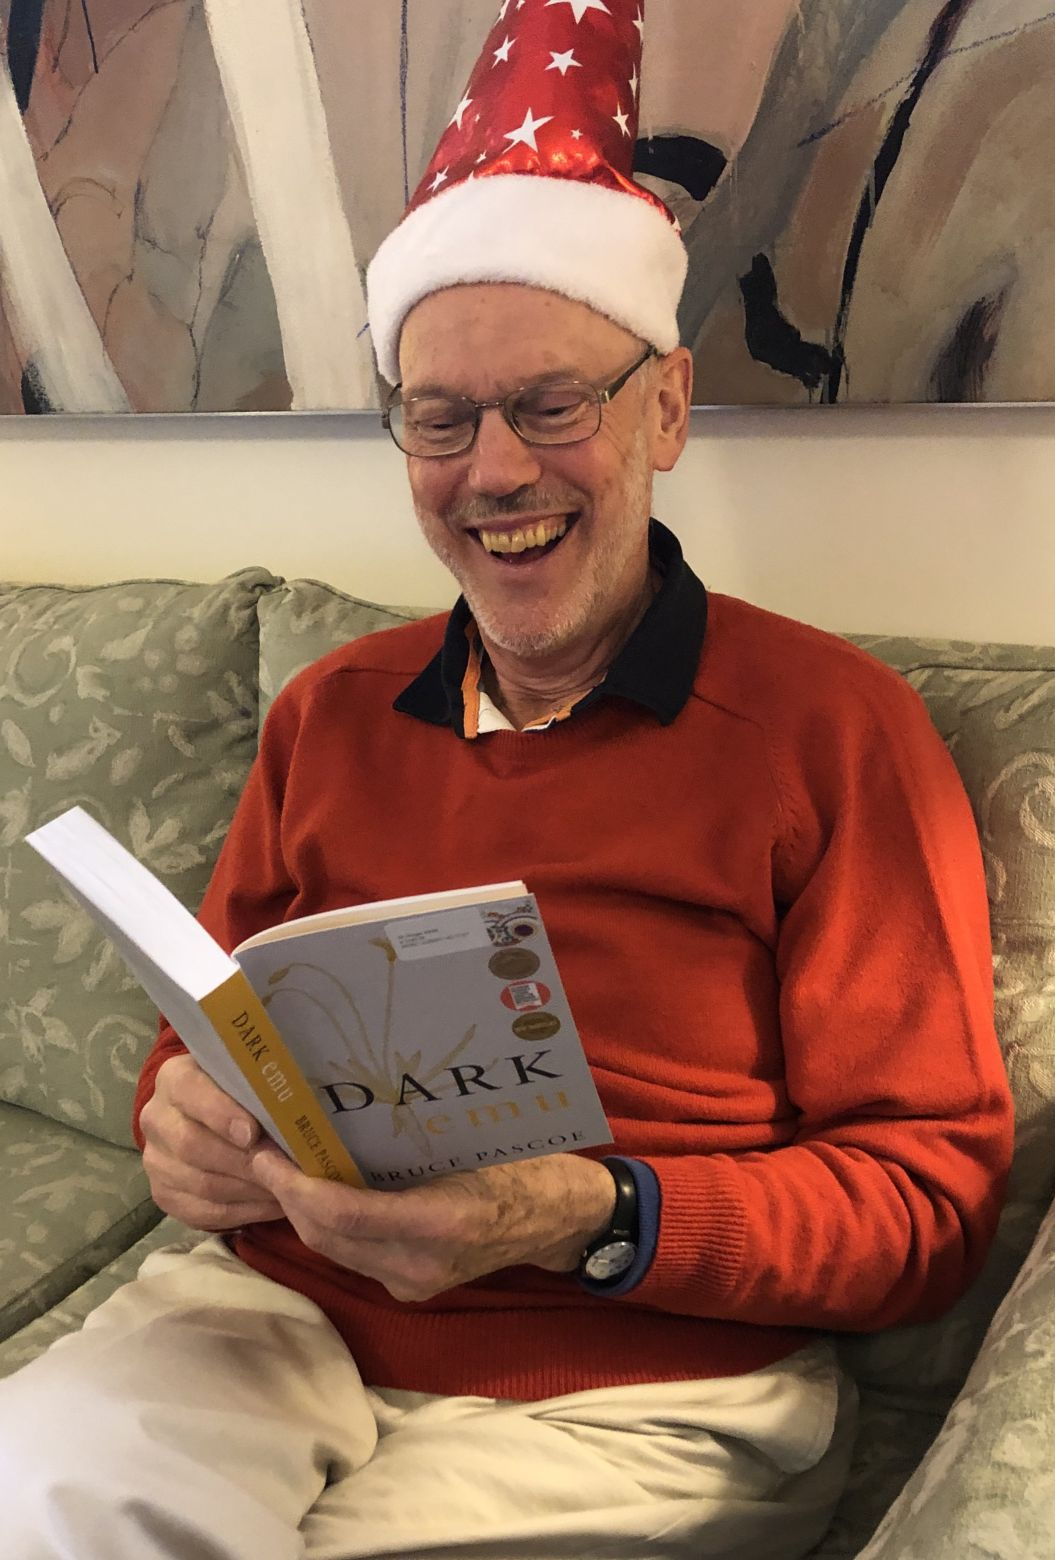 The Christmas mood at the Book Club